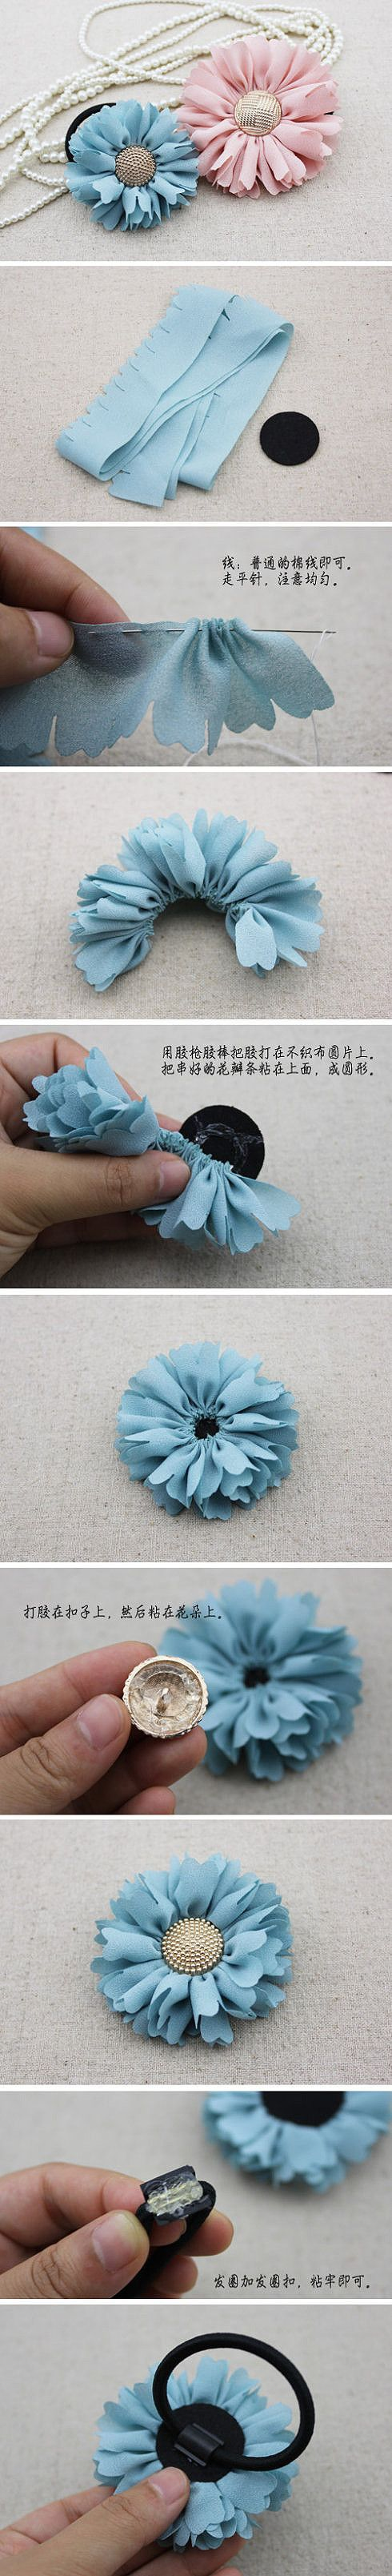 cute diy flower...could make your own boquet like this too